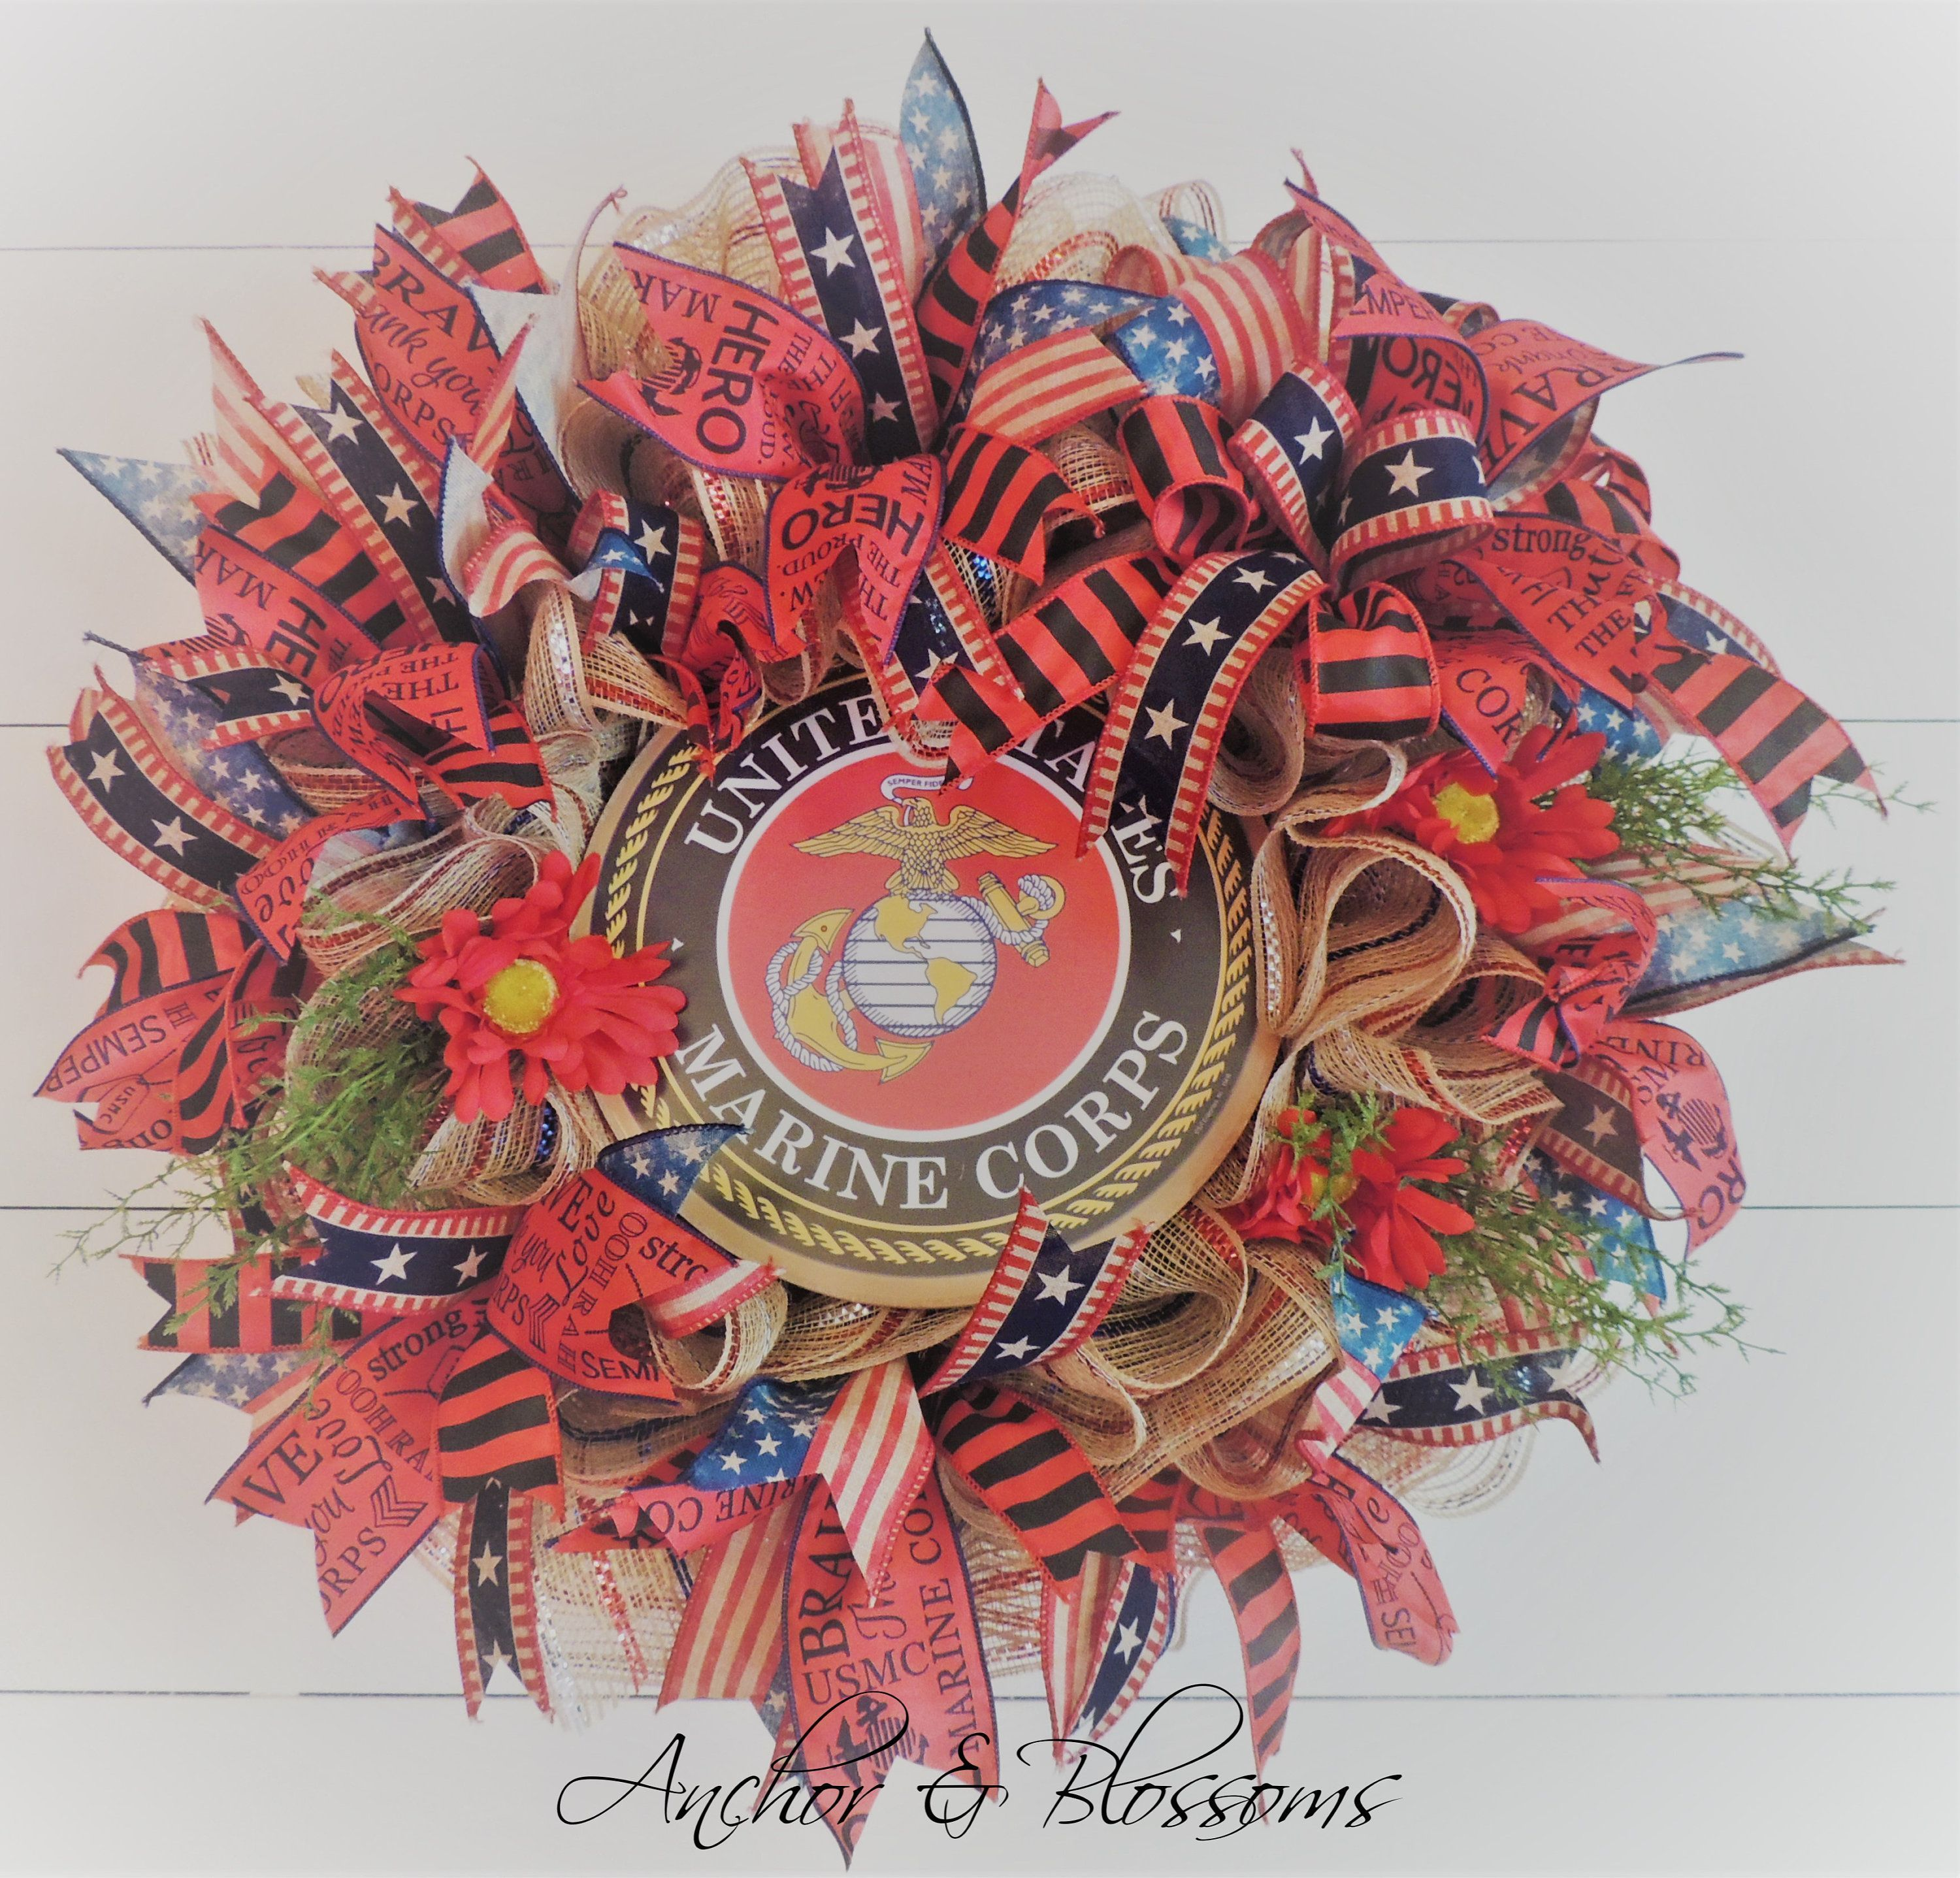 Veterans Day Wreath, Veterans Day Door Wreath, US Army Door Wreath, Fall Wreath, Summer Wreath, Door Wreath, Military Wreath, Veteran Wreath #veteransdaydecorations Veterans Day Wreath, Veterans Day Door Wreath, US Army Door Wreath, Fall Wreath, Summer Wreath, Door Wreath, Military Wreath, Veteran Wreath by AnchorandBlossoms on Etsy #veteransdaydecorations Veterans Day Wreath, Veterans Day Door Wreath, US Army Door Wreath, Fall Wreath, Summer Wreath, Door Wreath, Military Wreath, Veteran Wreath #veteransdaydecorations